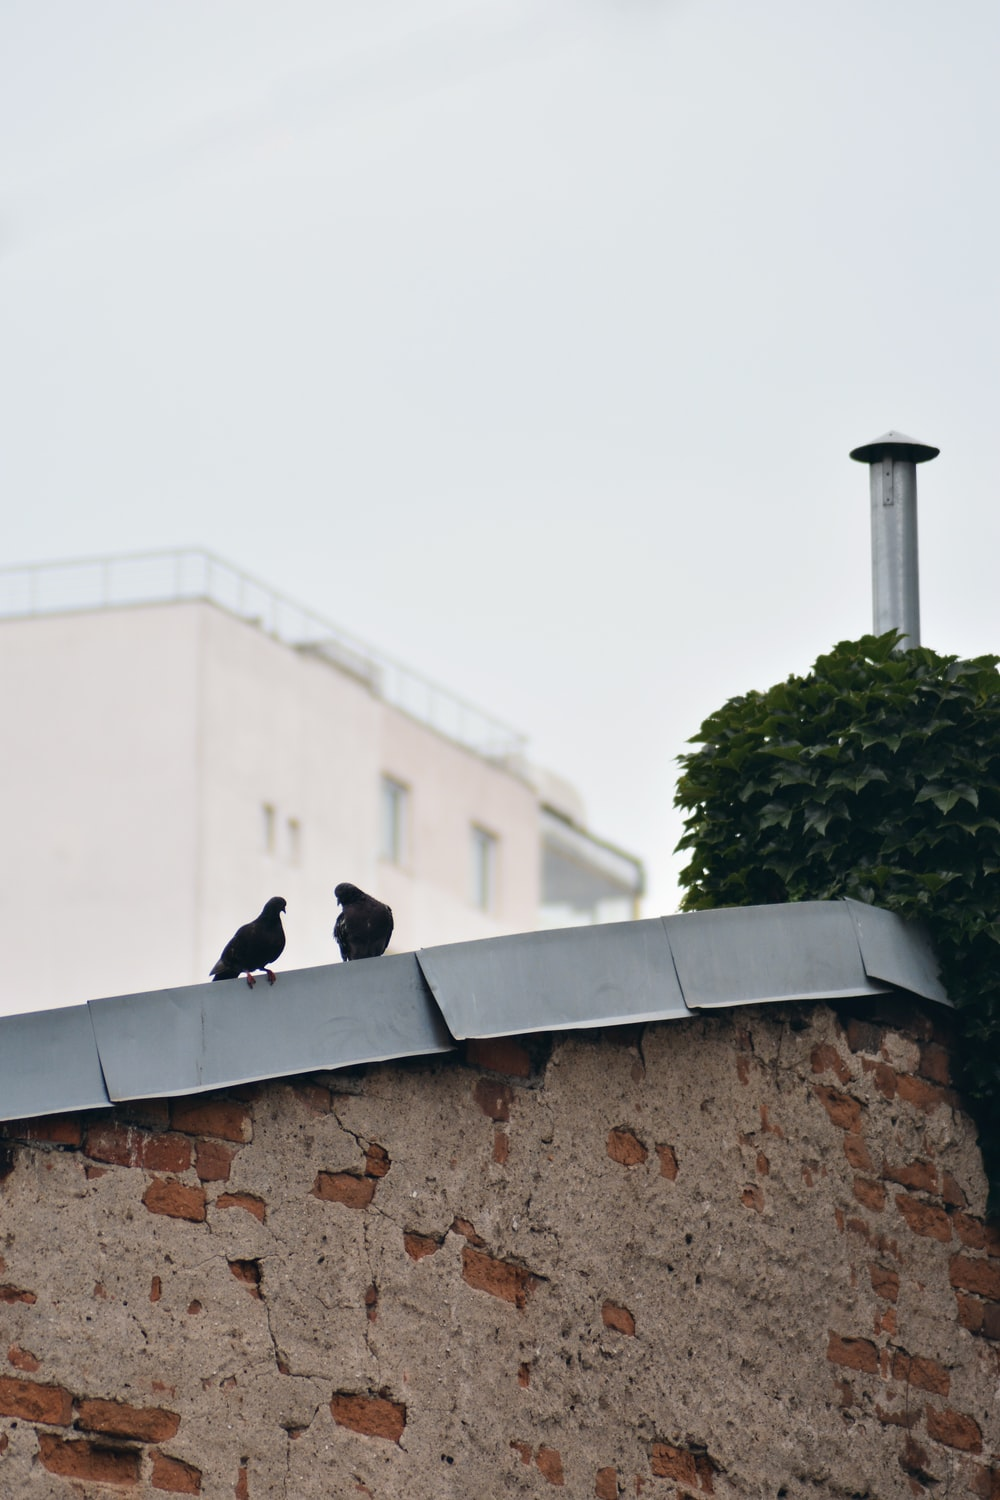 two black birds on gray concrete wall during daytime